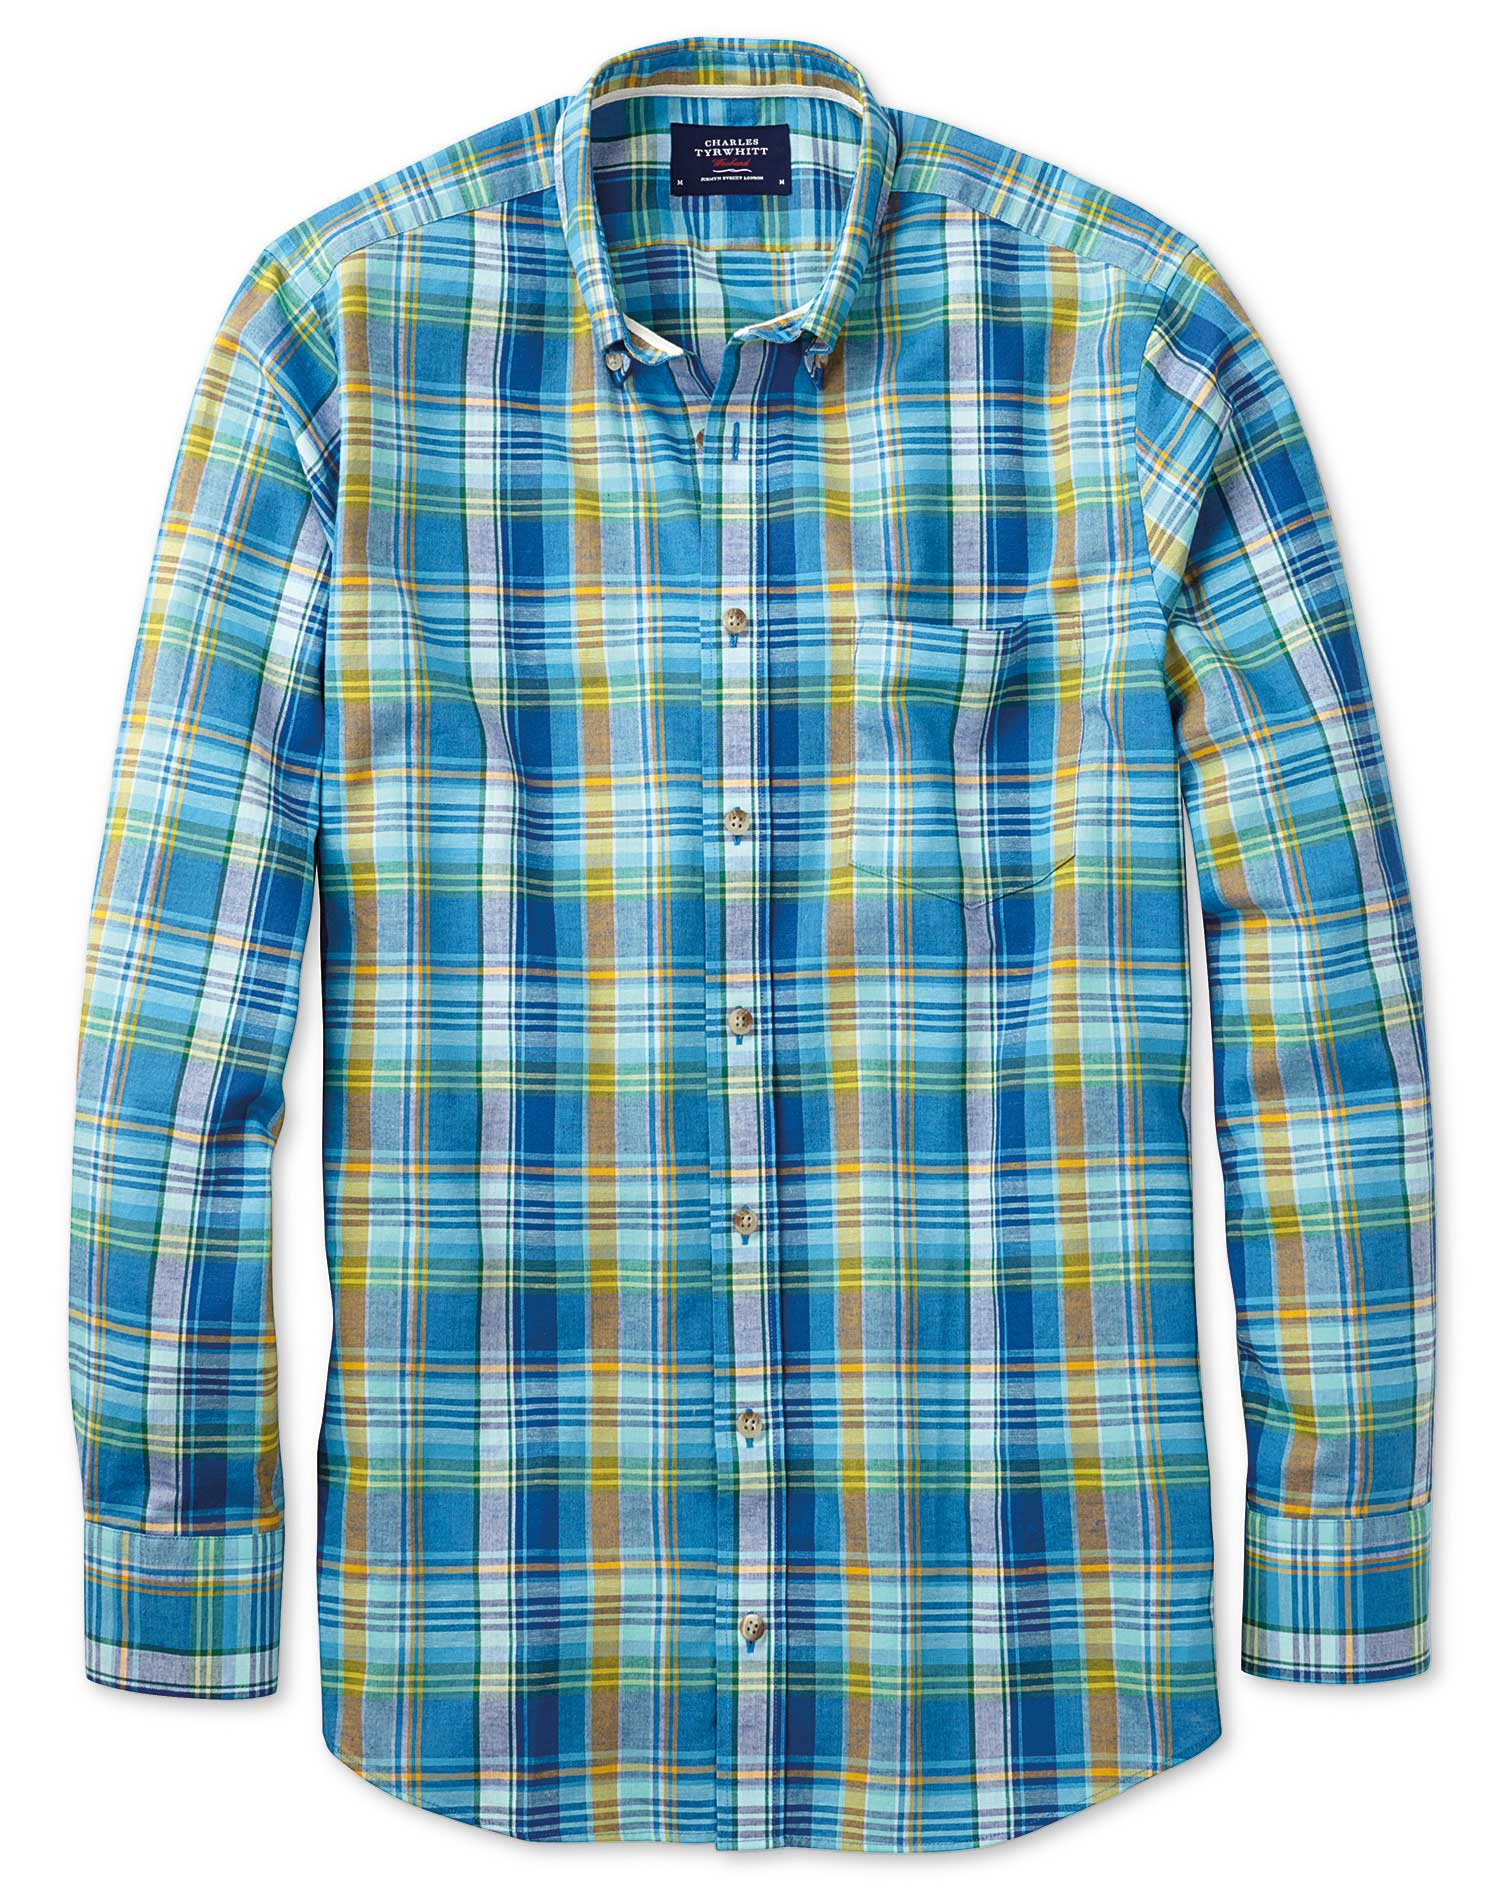 Classic Fit Green and Blue Check Shirt Single Cuff Size Small by Charles Tyrwhitt